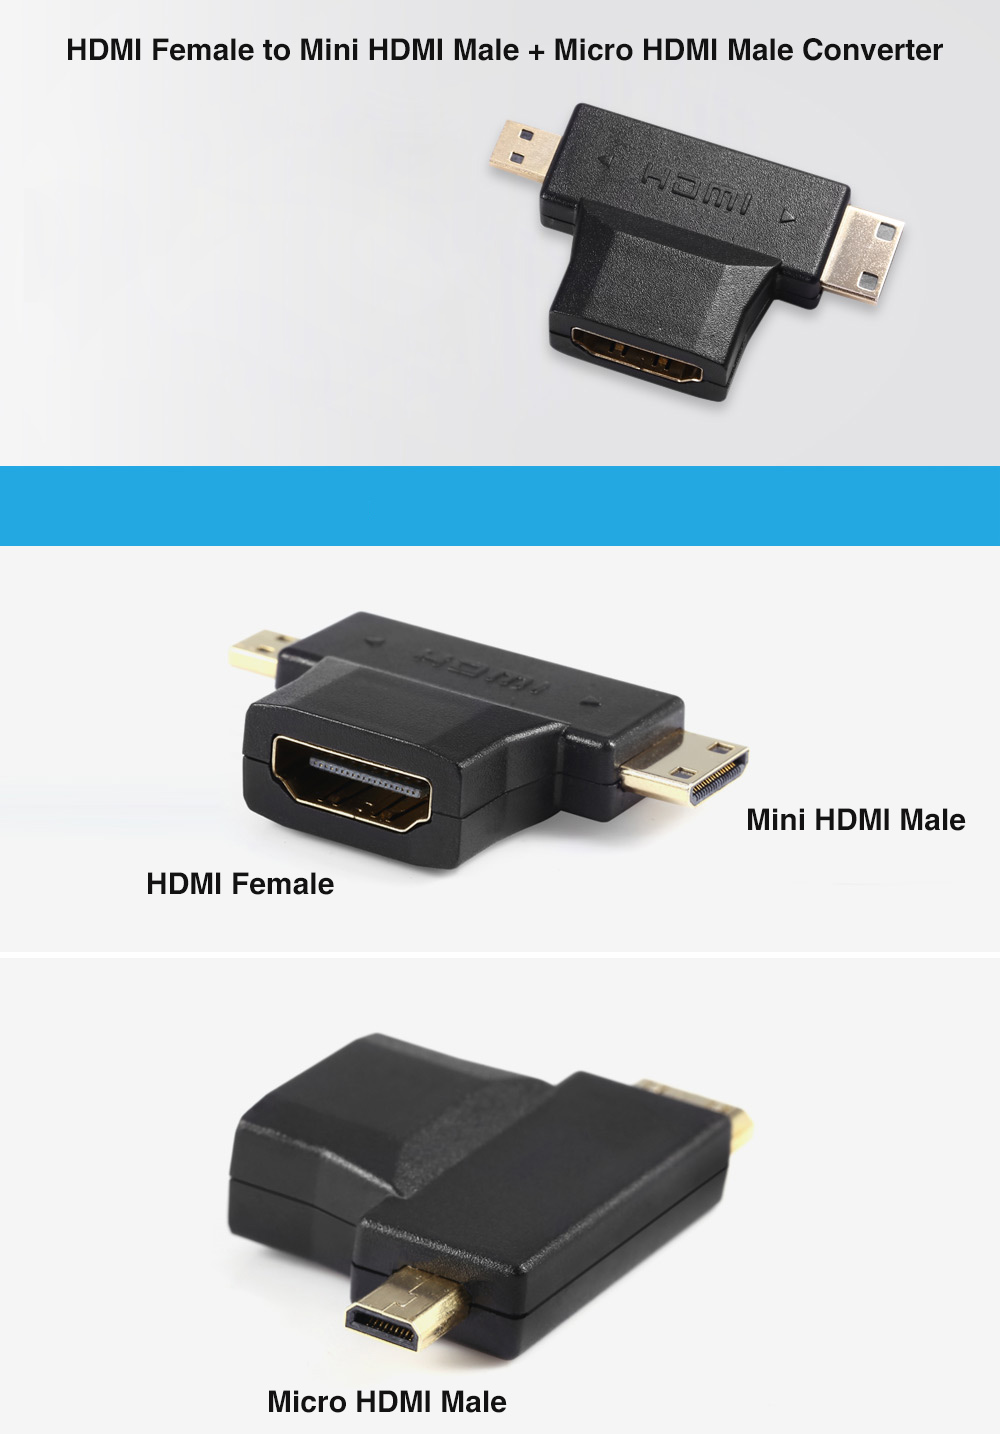 HDMI Female to Mini HDMI Male + Micro HDMI Male Adapter Converter